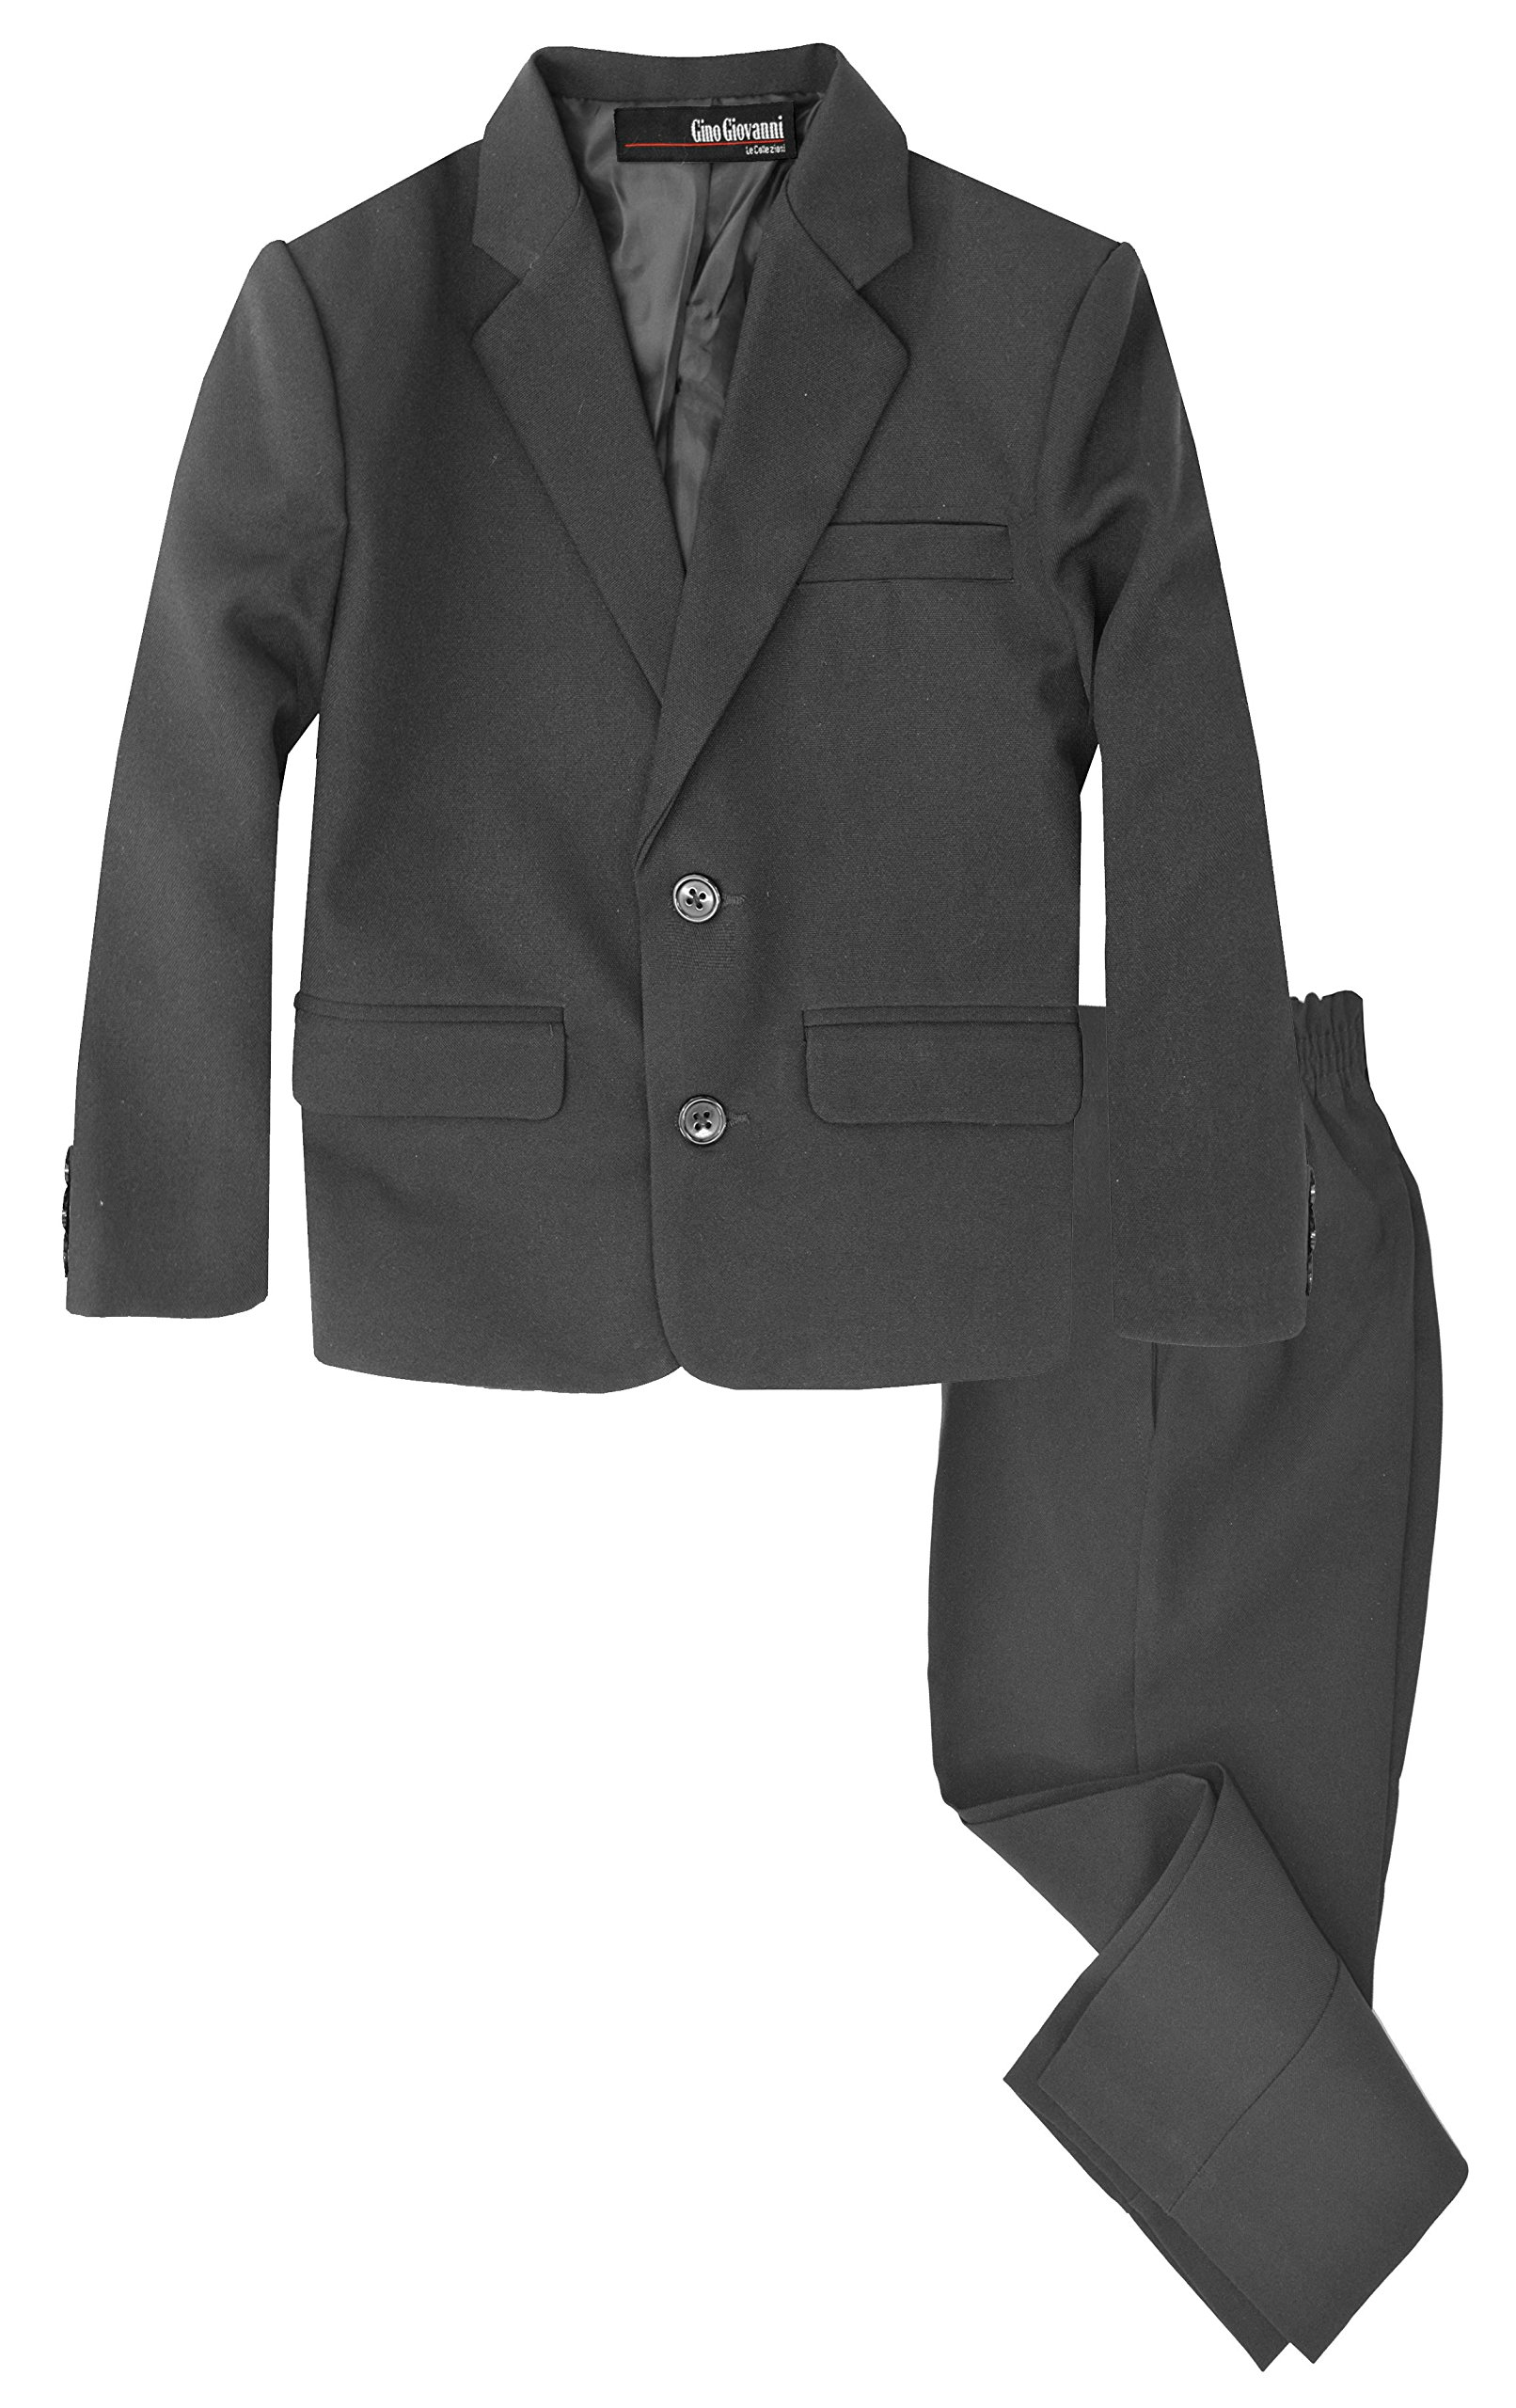 G218 Boys 2 Piece Suit Set Toddler to Teen (8, Charcoal) by Gino Giovanni